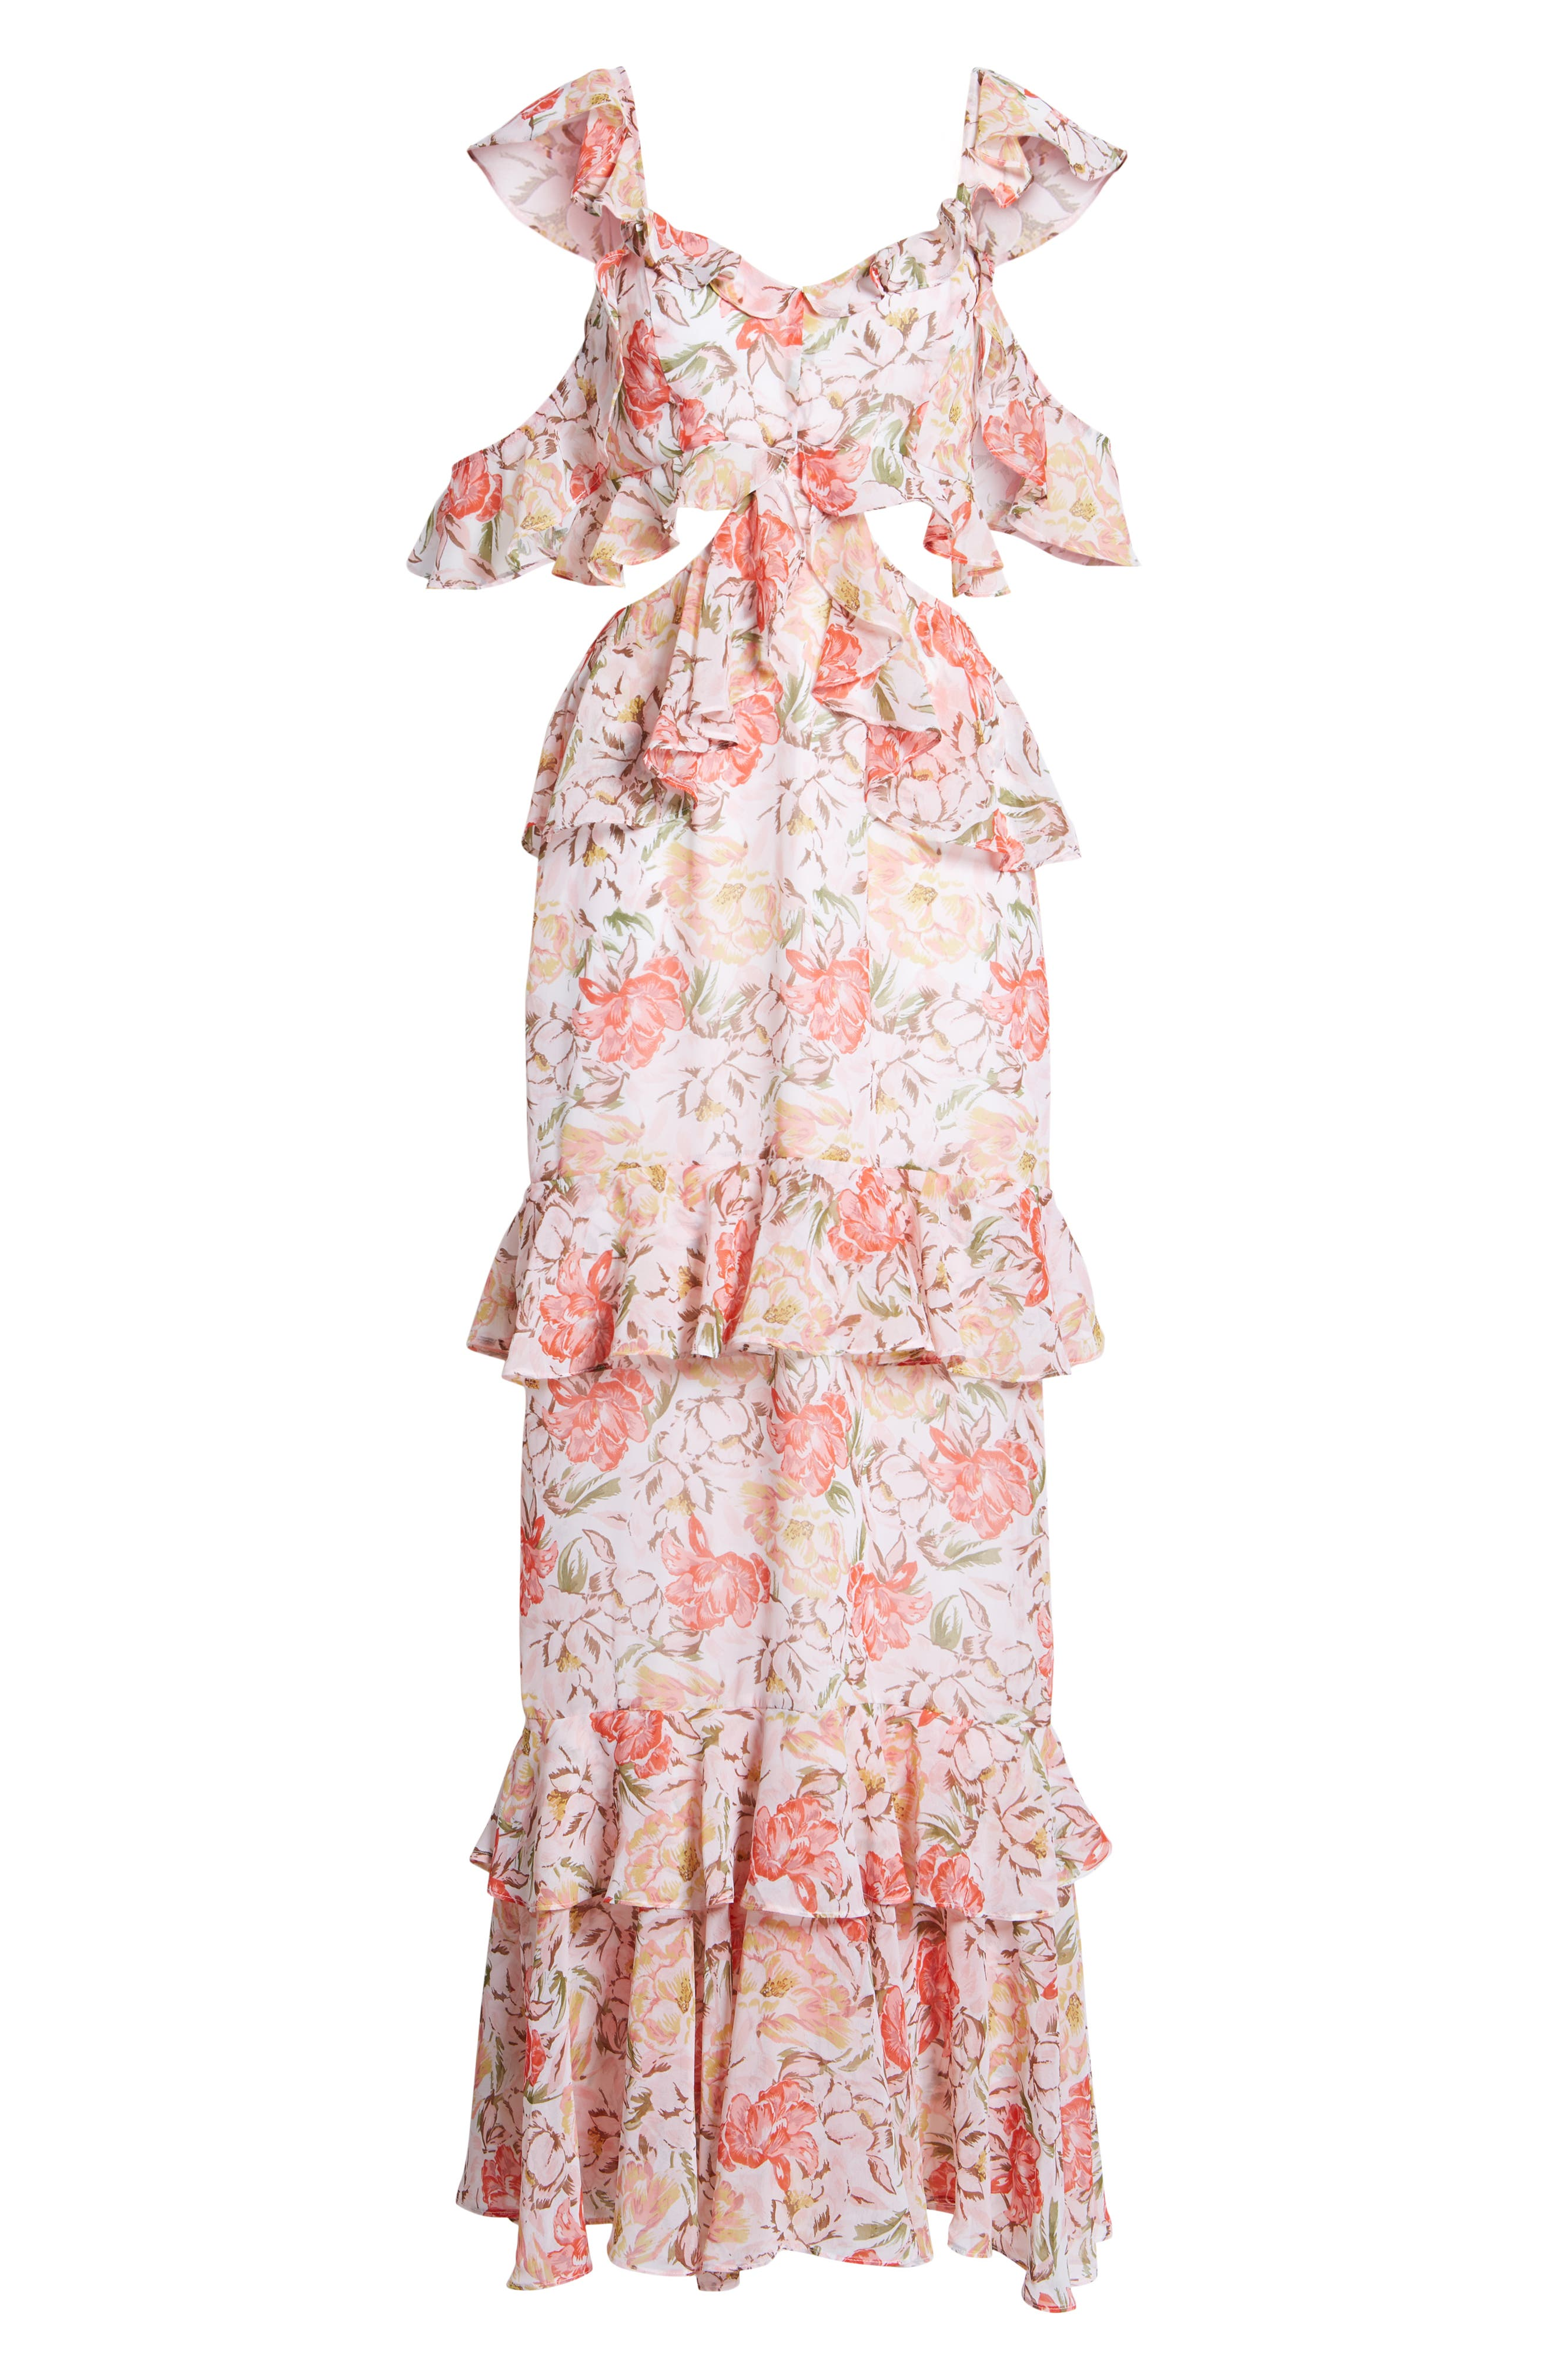 Milan Cut Out Ruffle Maxi Dress,                             Alternate thumbnail 8, color,                             Ivory Floral